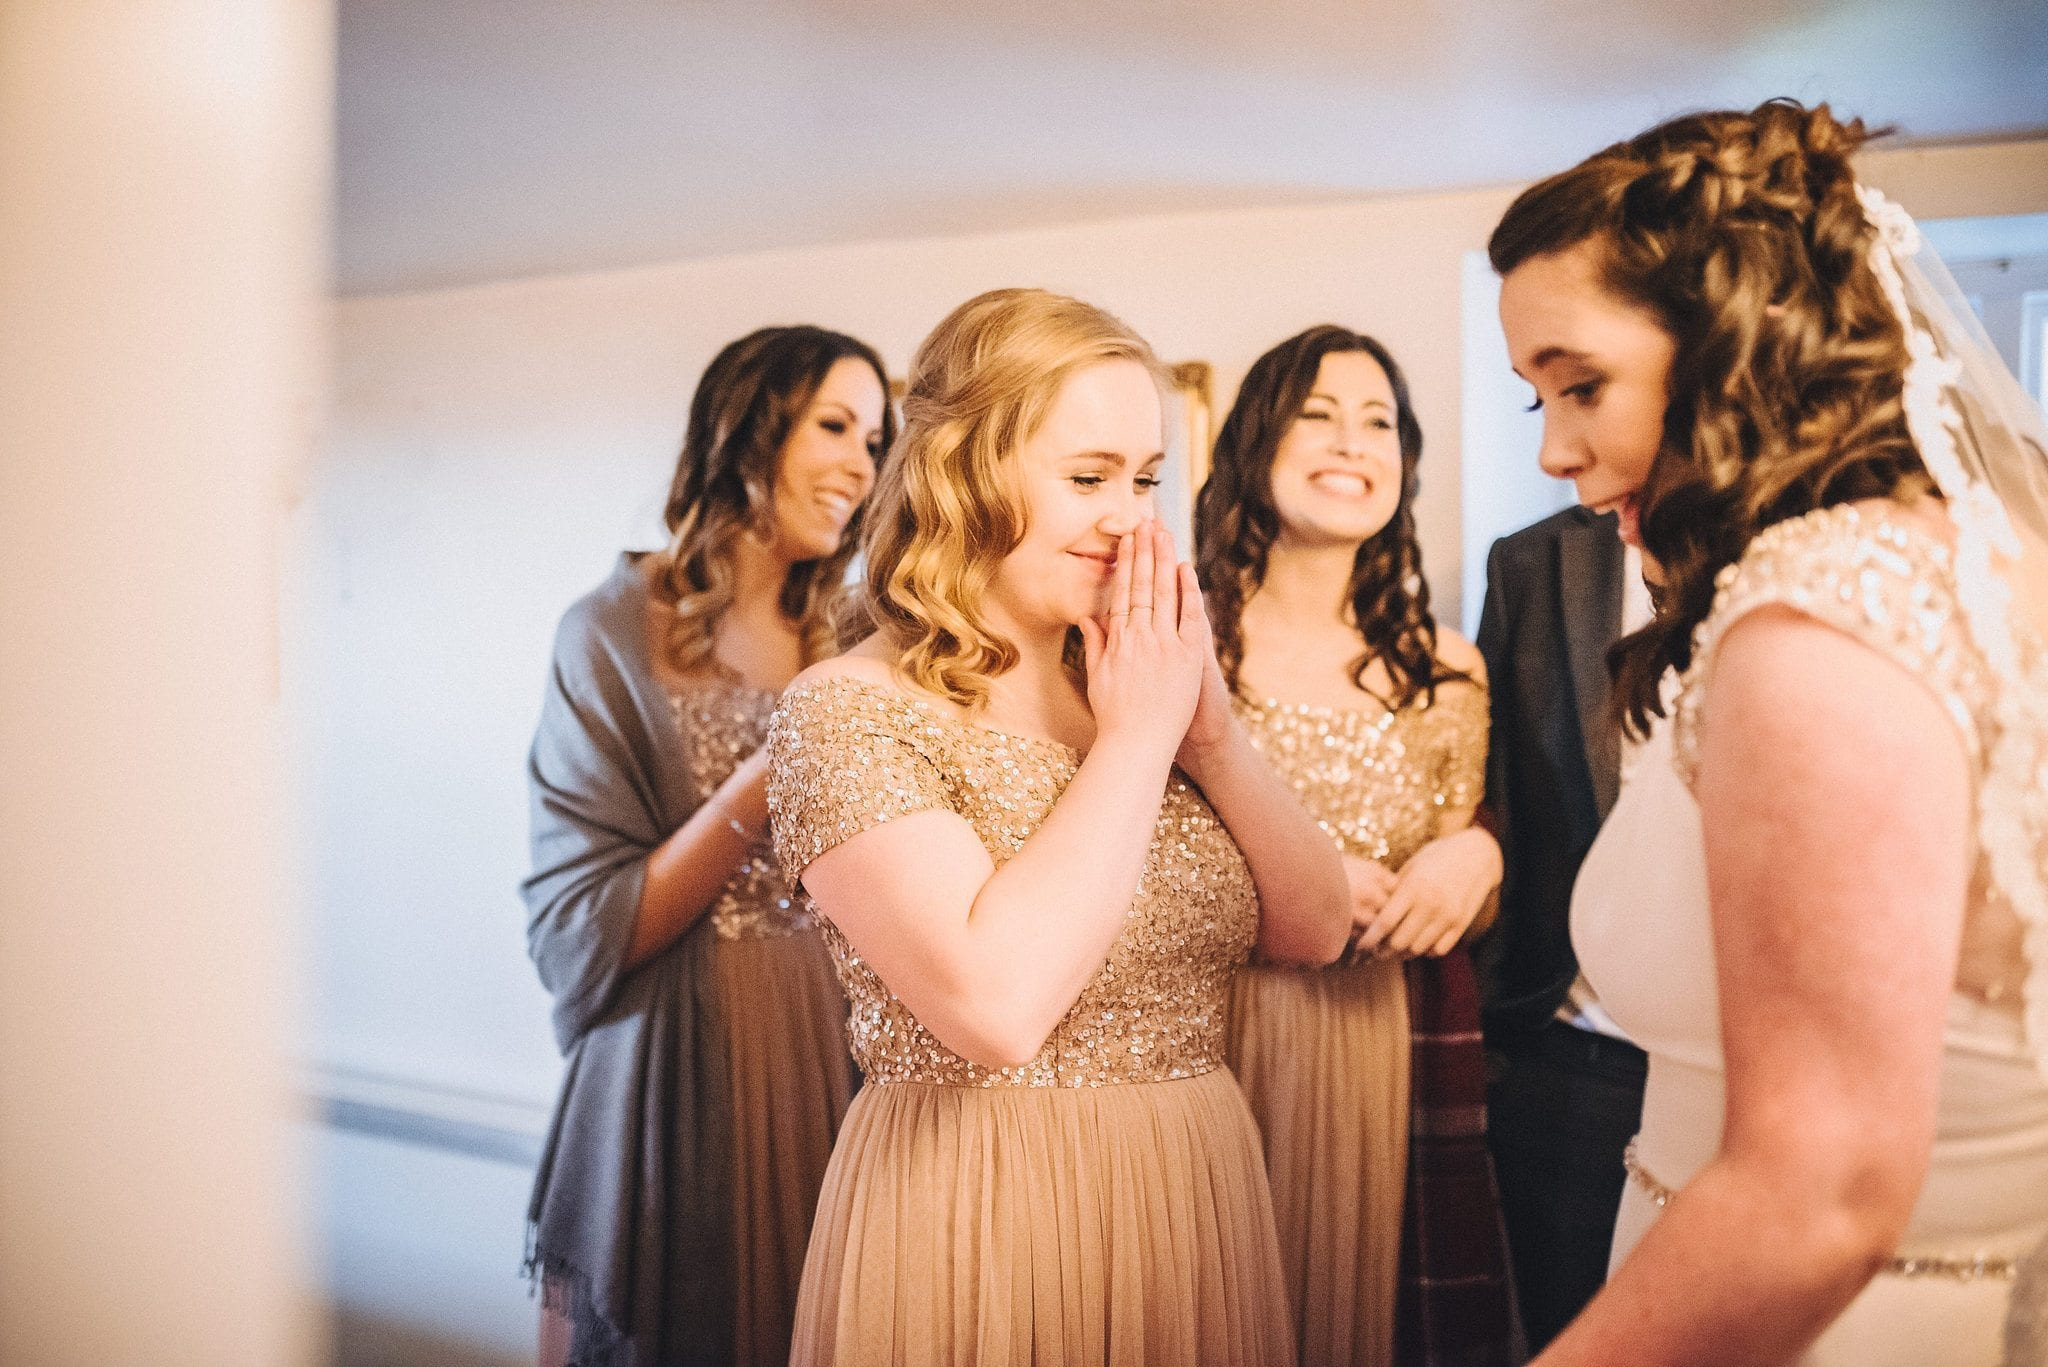 Bridesmaid gets emotional seeing bride in her dress for the first time